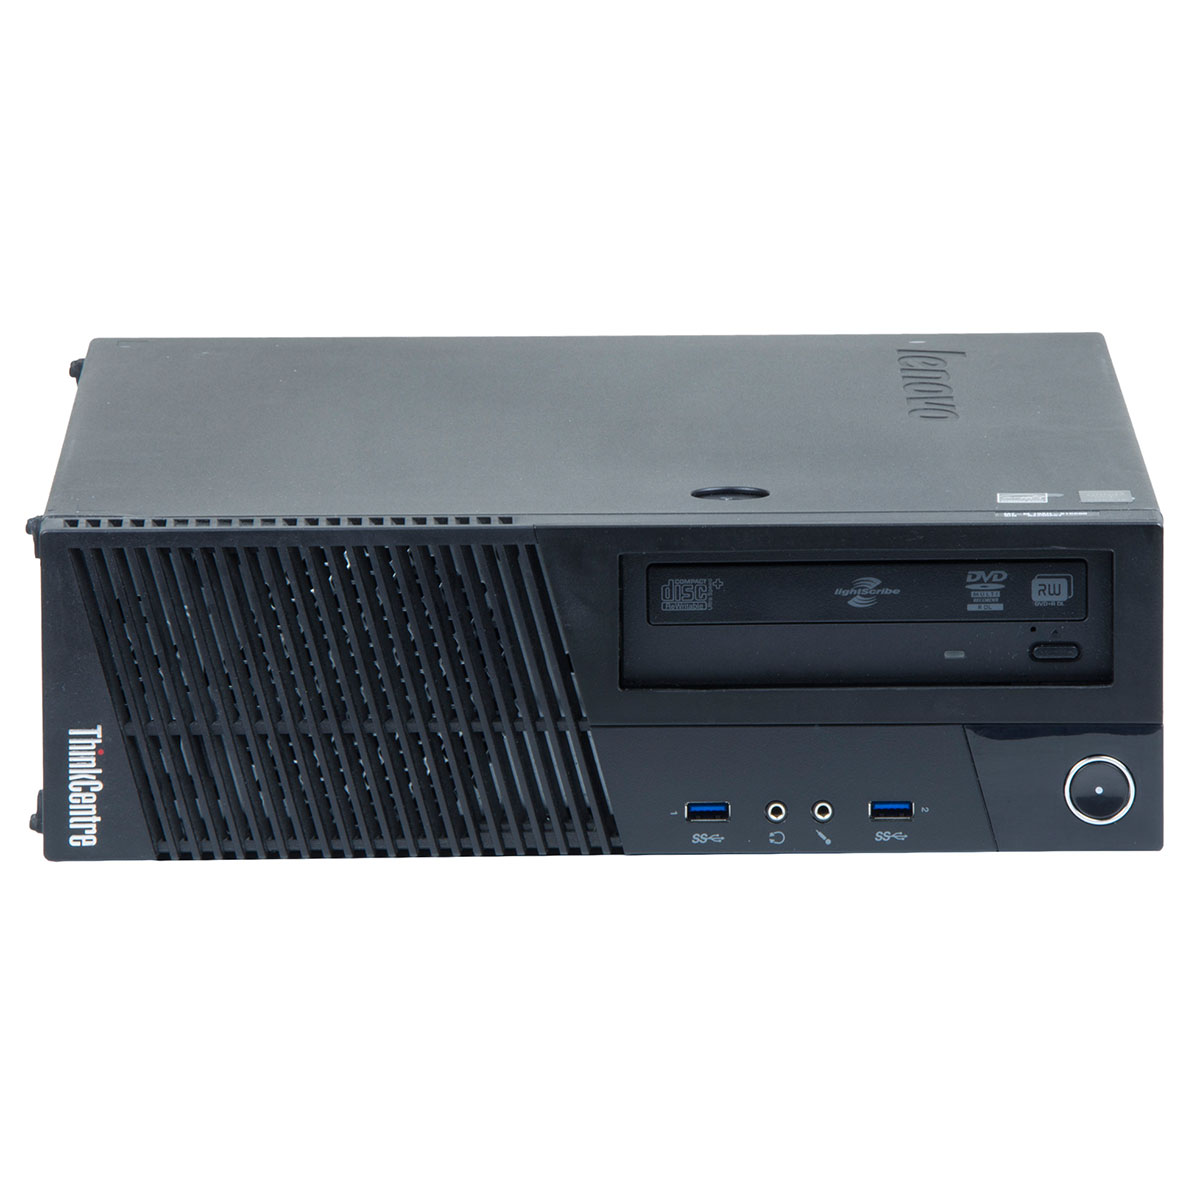 Lenovo ThinkCentre M83 Intel Core i5-4570 3.20GHz  8GB DDR3  256GB SSD  SFF  Windows 10 Home MAR  calculator refurbished